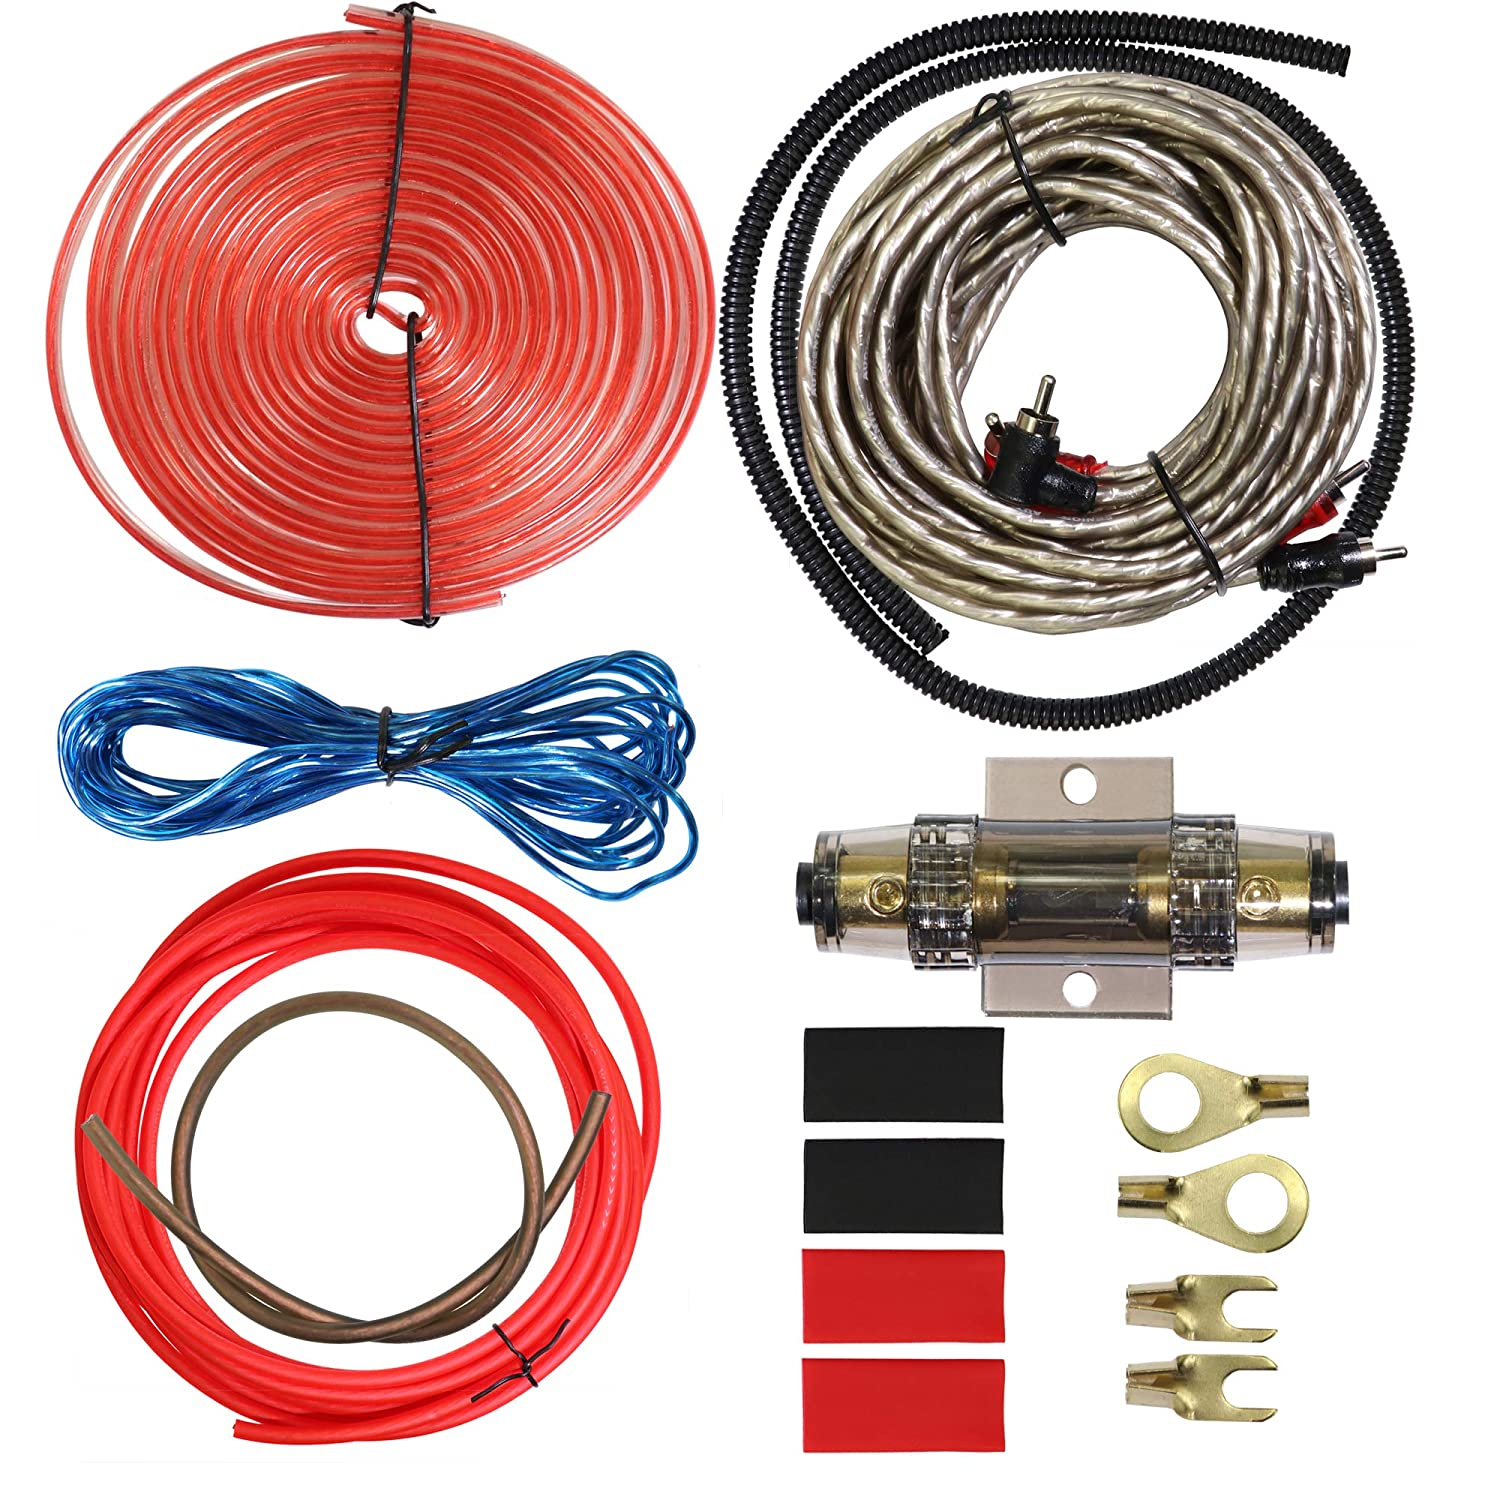 RCA Cable,Speaker Wire Ground Split Loom Tubing and Fuse Holder 8 Gauge Complete Amp Kit Amplifier Installation Wiring Wire Kit,Includes Power Remote Cable Welugnal Car Amplifier Wiring Kit